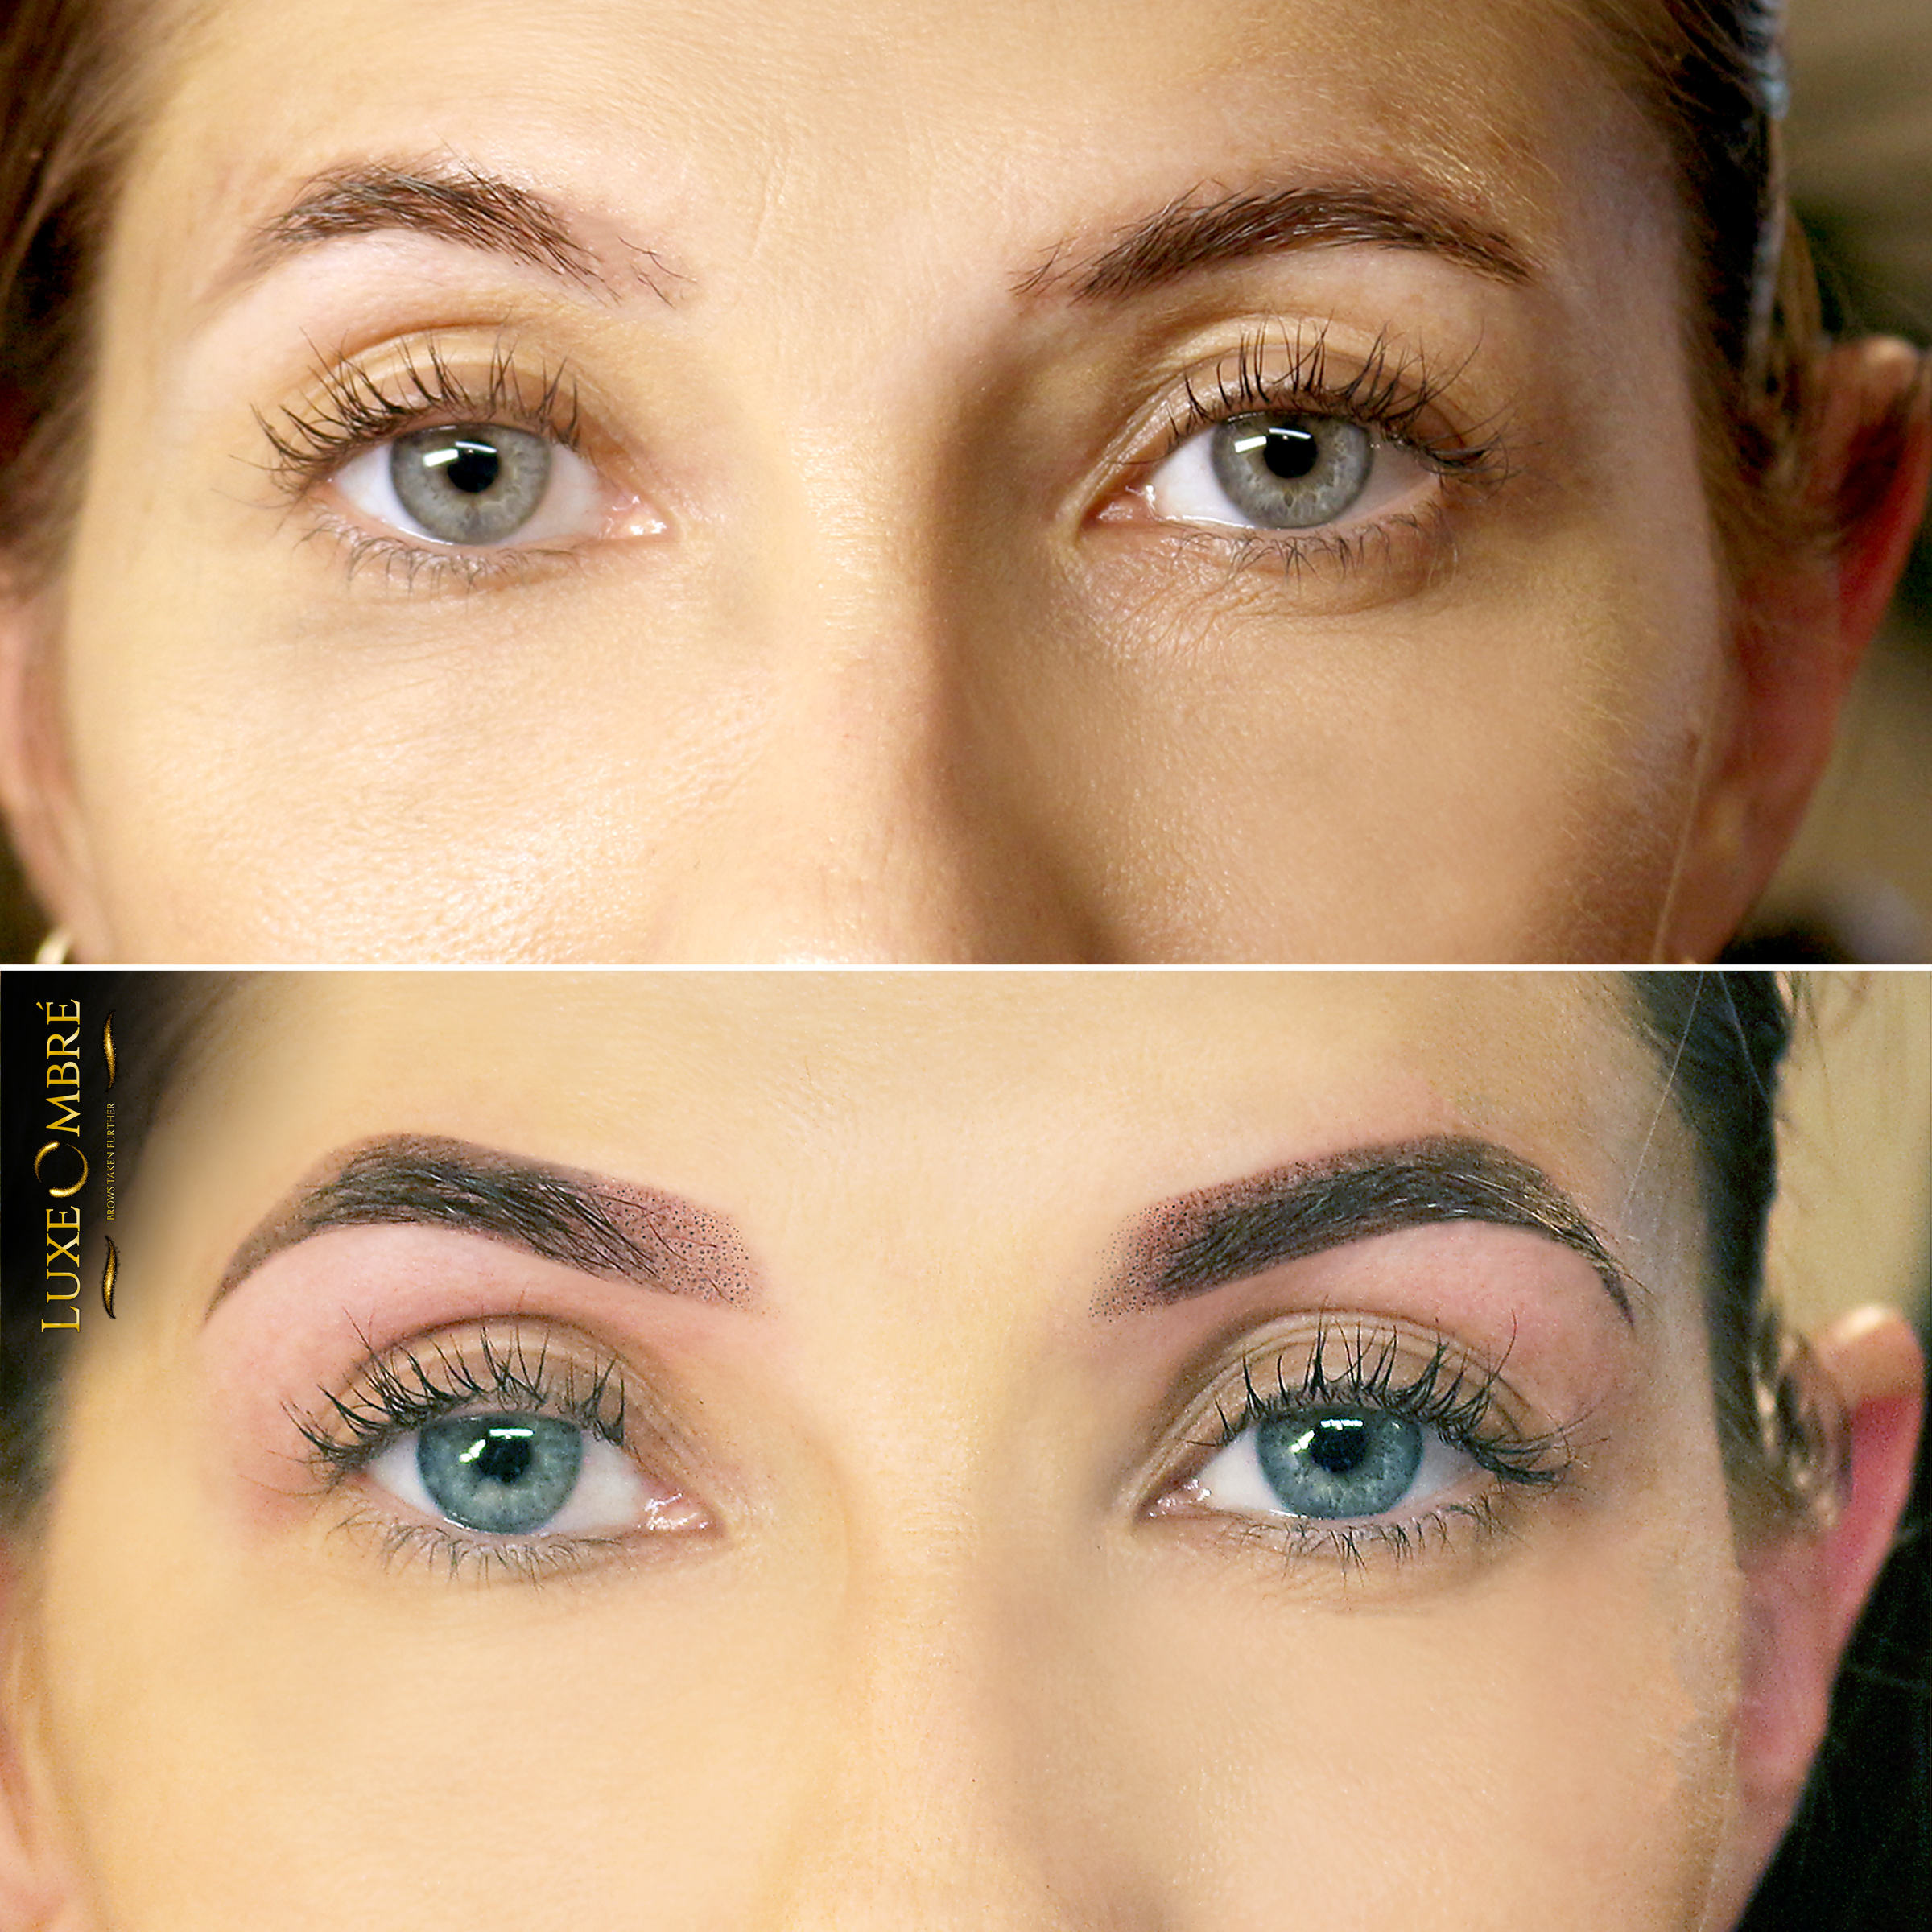 Ordinary brows turned into amazing with the help of LuxeOmbre.